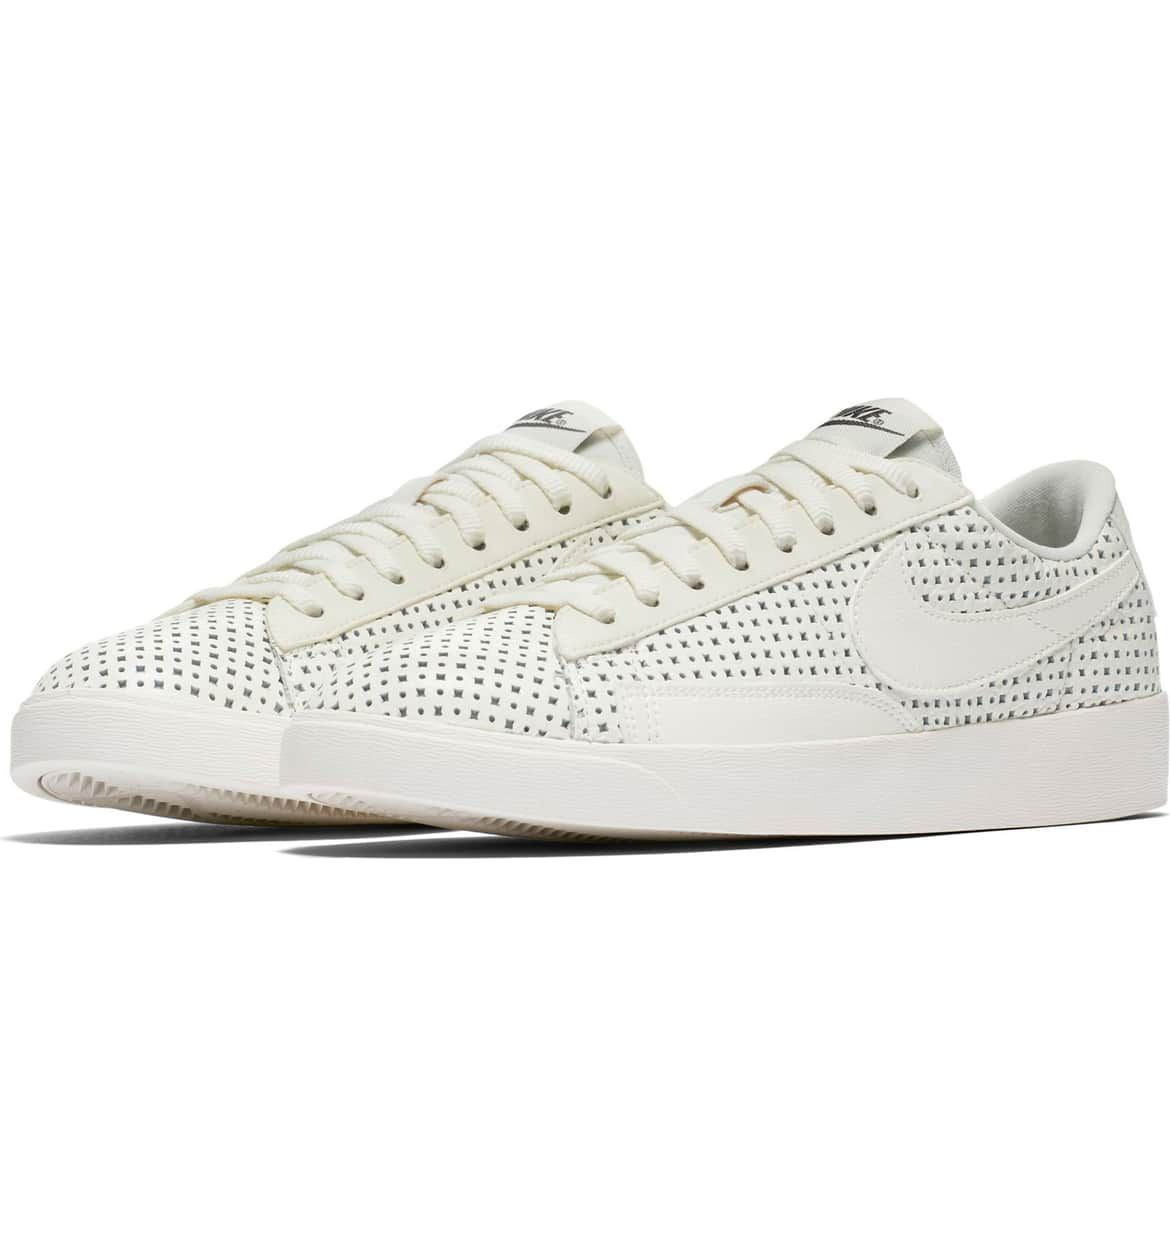 new arrival 54747 1f3ae Blazer Low SE Sneaker, Main, color, SAIL  SAIL